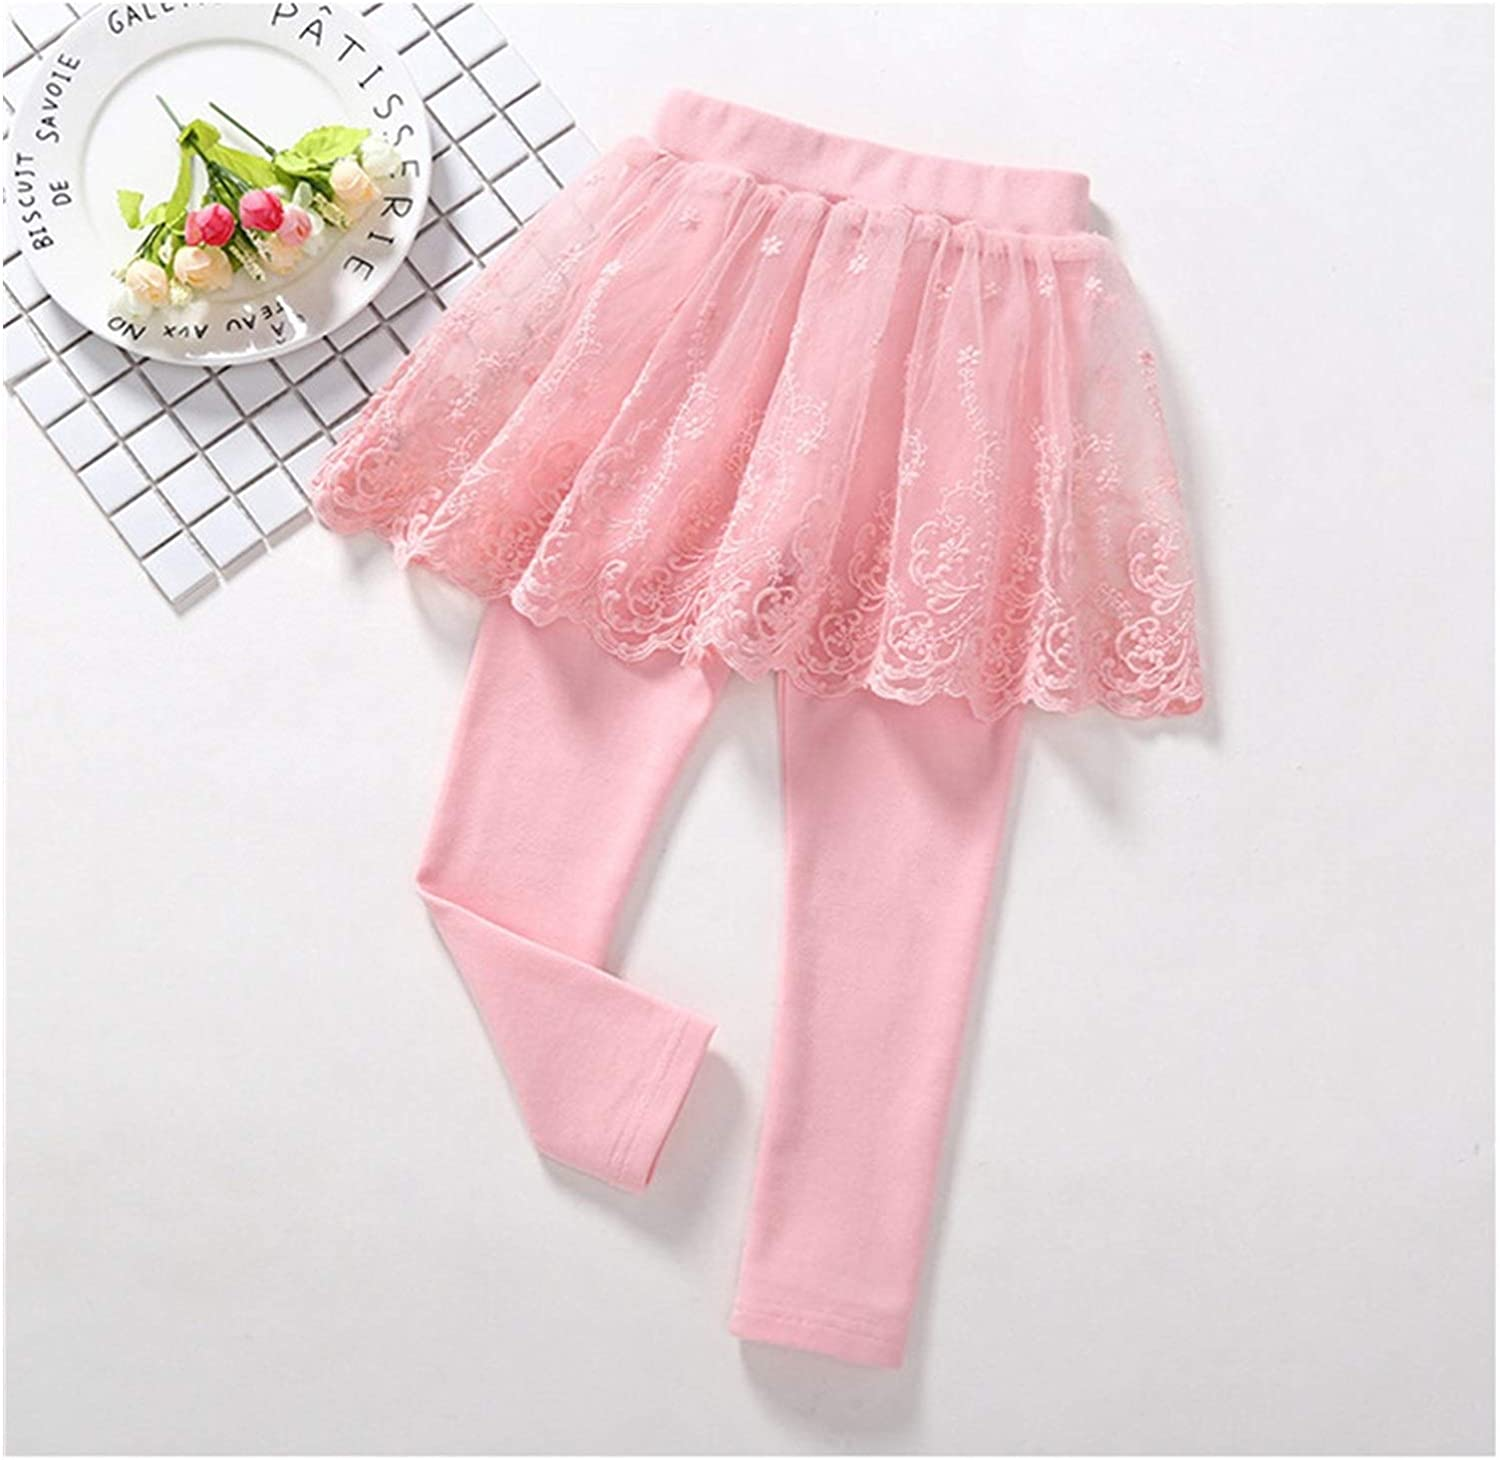 90 Spring and Autumn Childrens Slim Skirt Trousers 2-7 Years Old Childrens Clothes Pure Cotton Lace Princess Culottes Girls Leggings Color : 1, Size : 3T